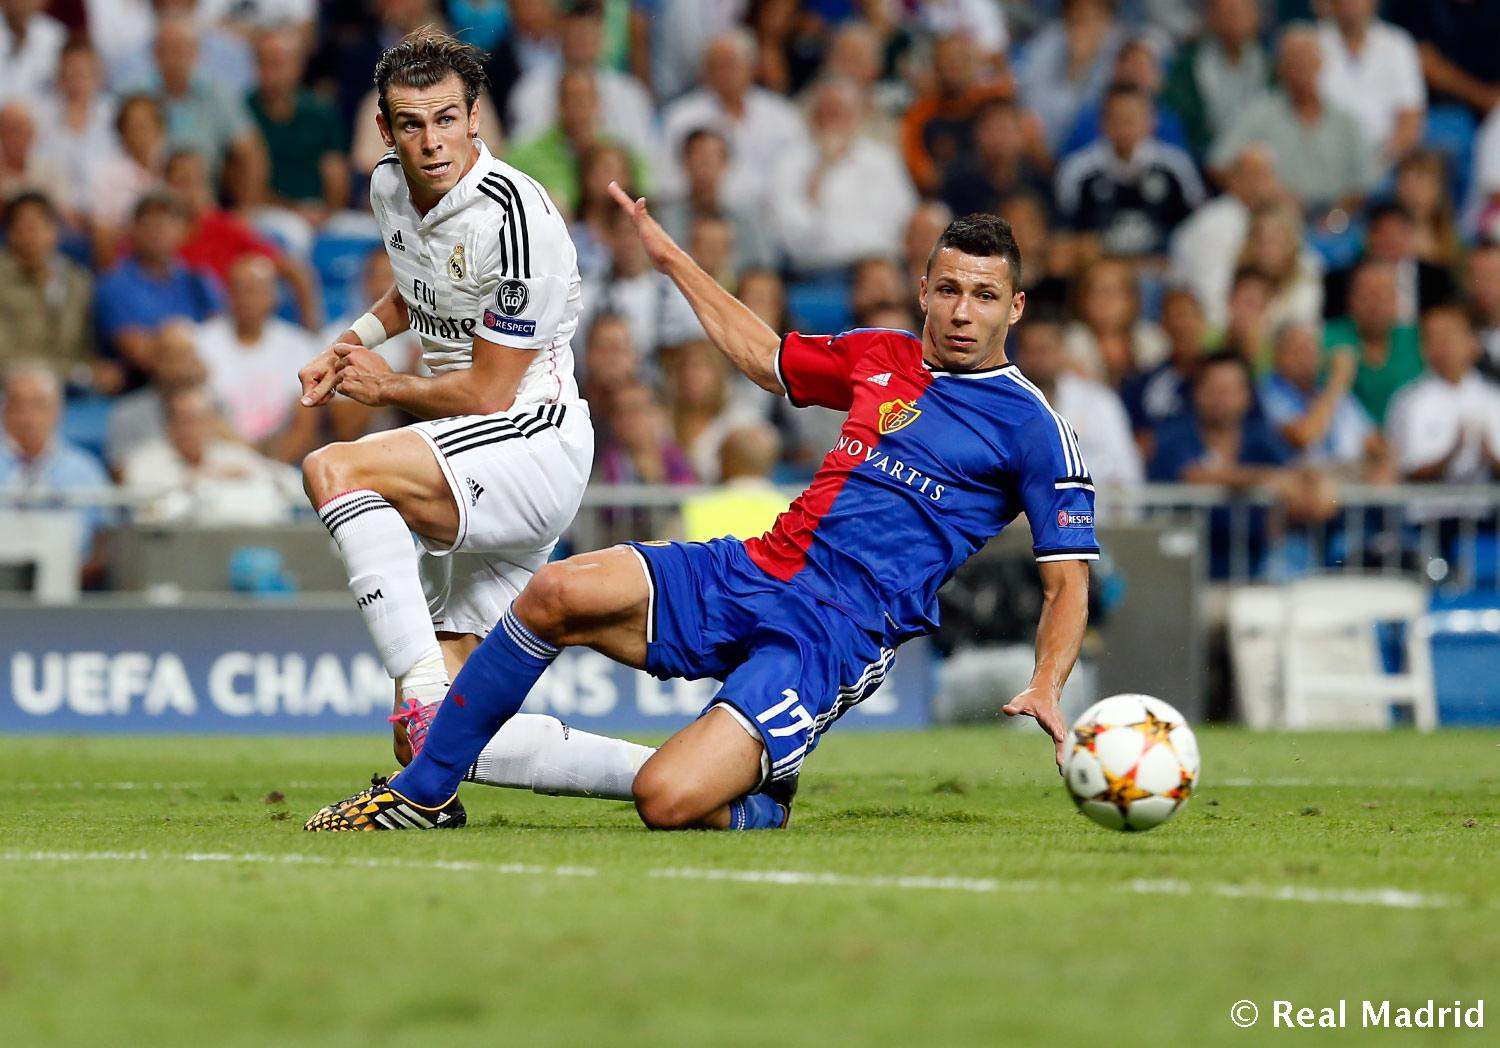 Real Madrid - Real Madrid - Basilea - 17-09-2014